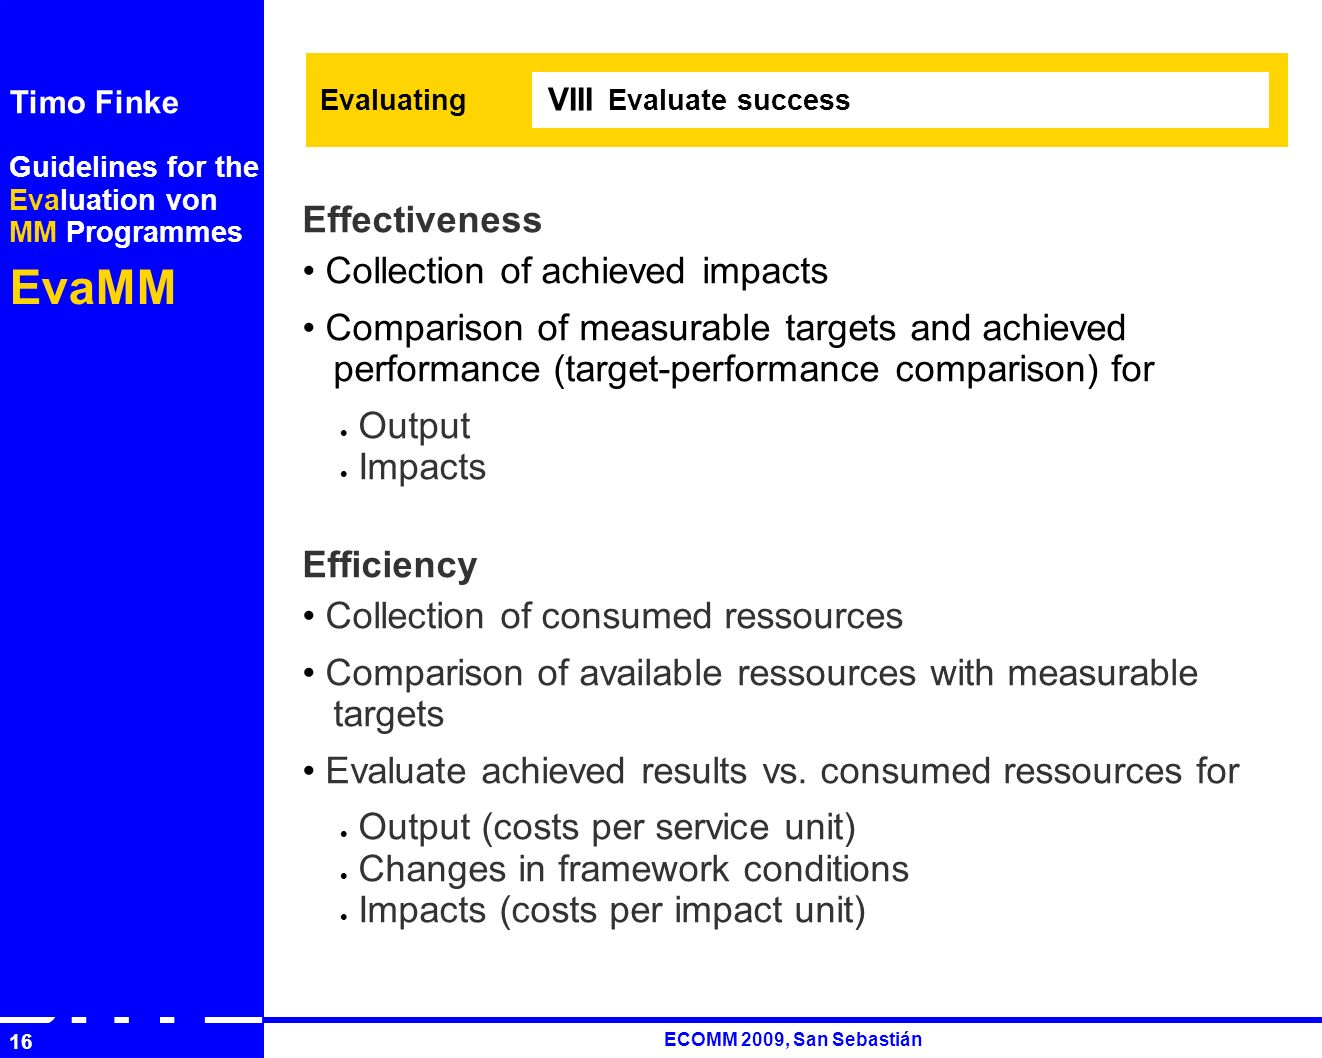 Guidelines for the Evaluation von MM Programmes EvaMM Timo Finke RUTH ECOMM 2009, San Sebastián 16 Evaluating Evaluate success VIII Effectiveness Collection of achieved impacts Comparison of measurable targets and achieved performance (target-performance comparison) for Output Impacts Efficiency Collection of consumed ressources Comparison of available ressources with measurable targets Evaluate achieved results vs.